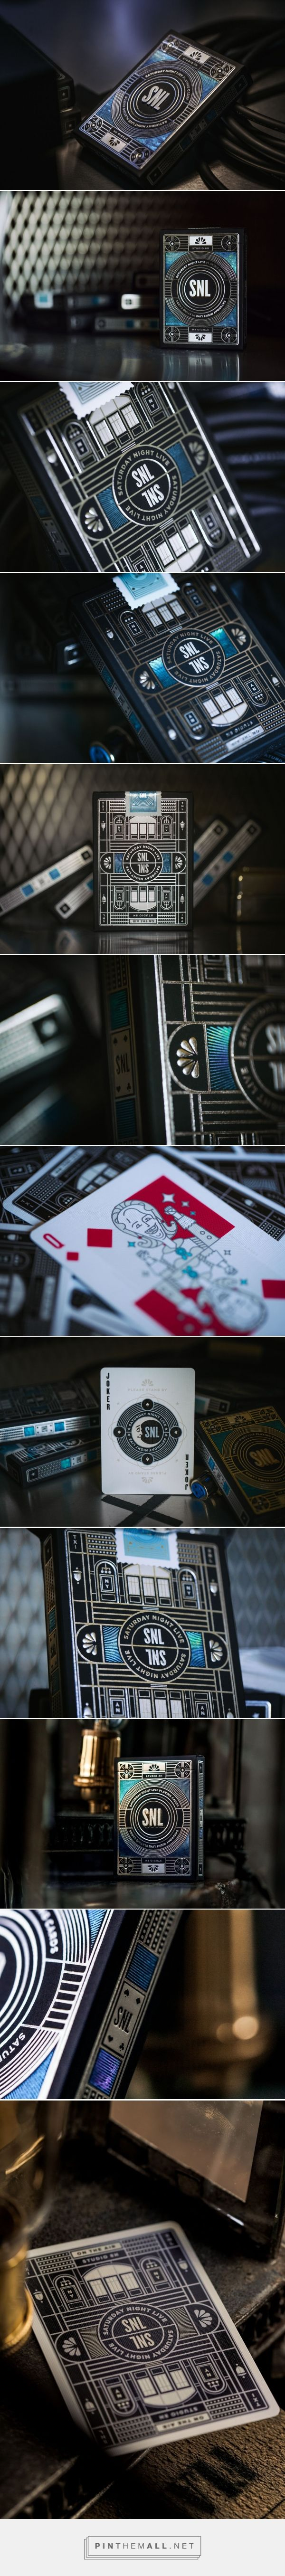 Saturday Night Live x Playing Cards packaging by theory11 - http://www.packagingoftheworld.com/2017/11/saturday-night-live-x-playing-cards.html